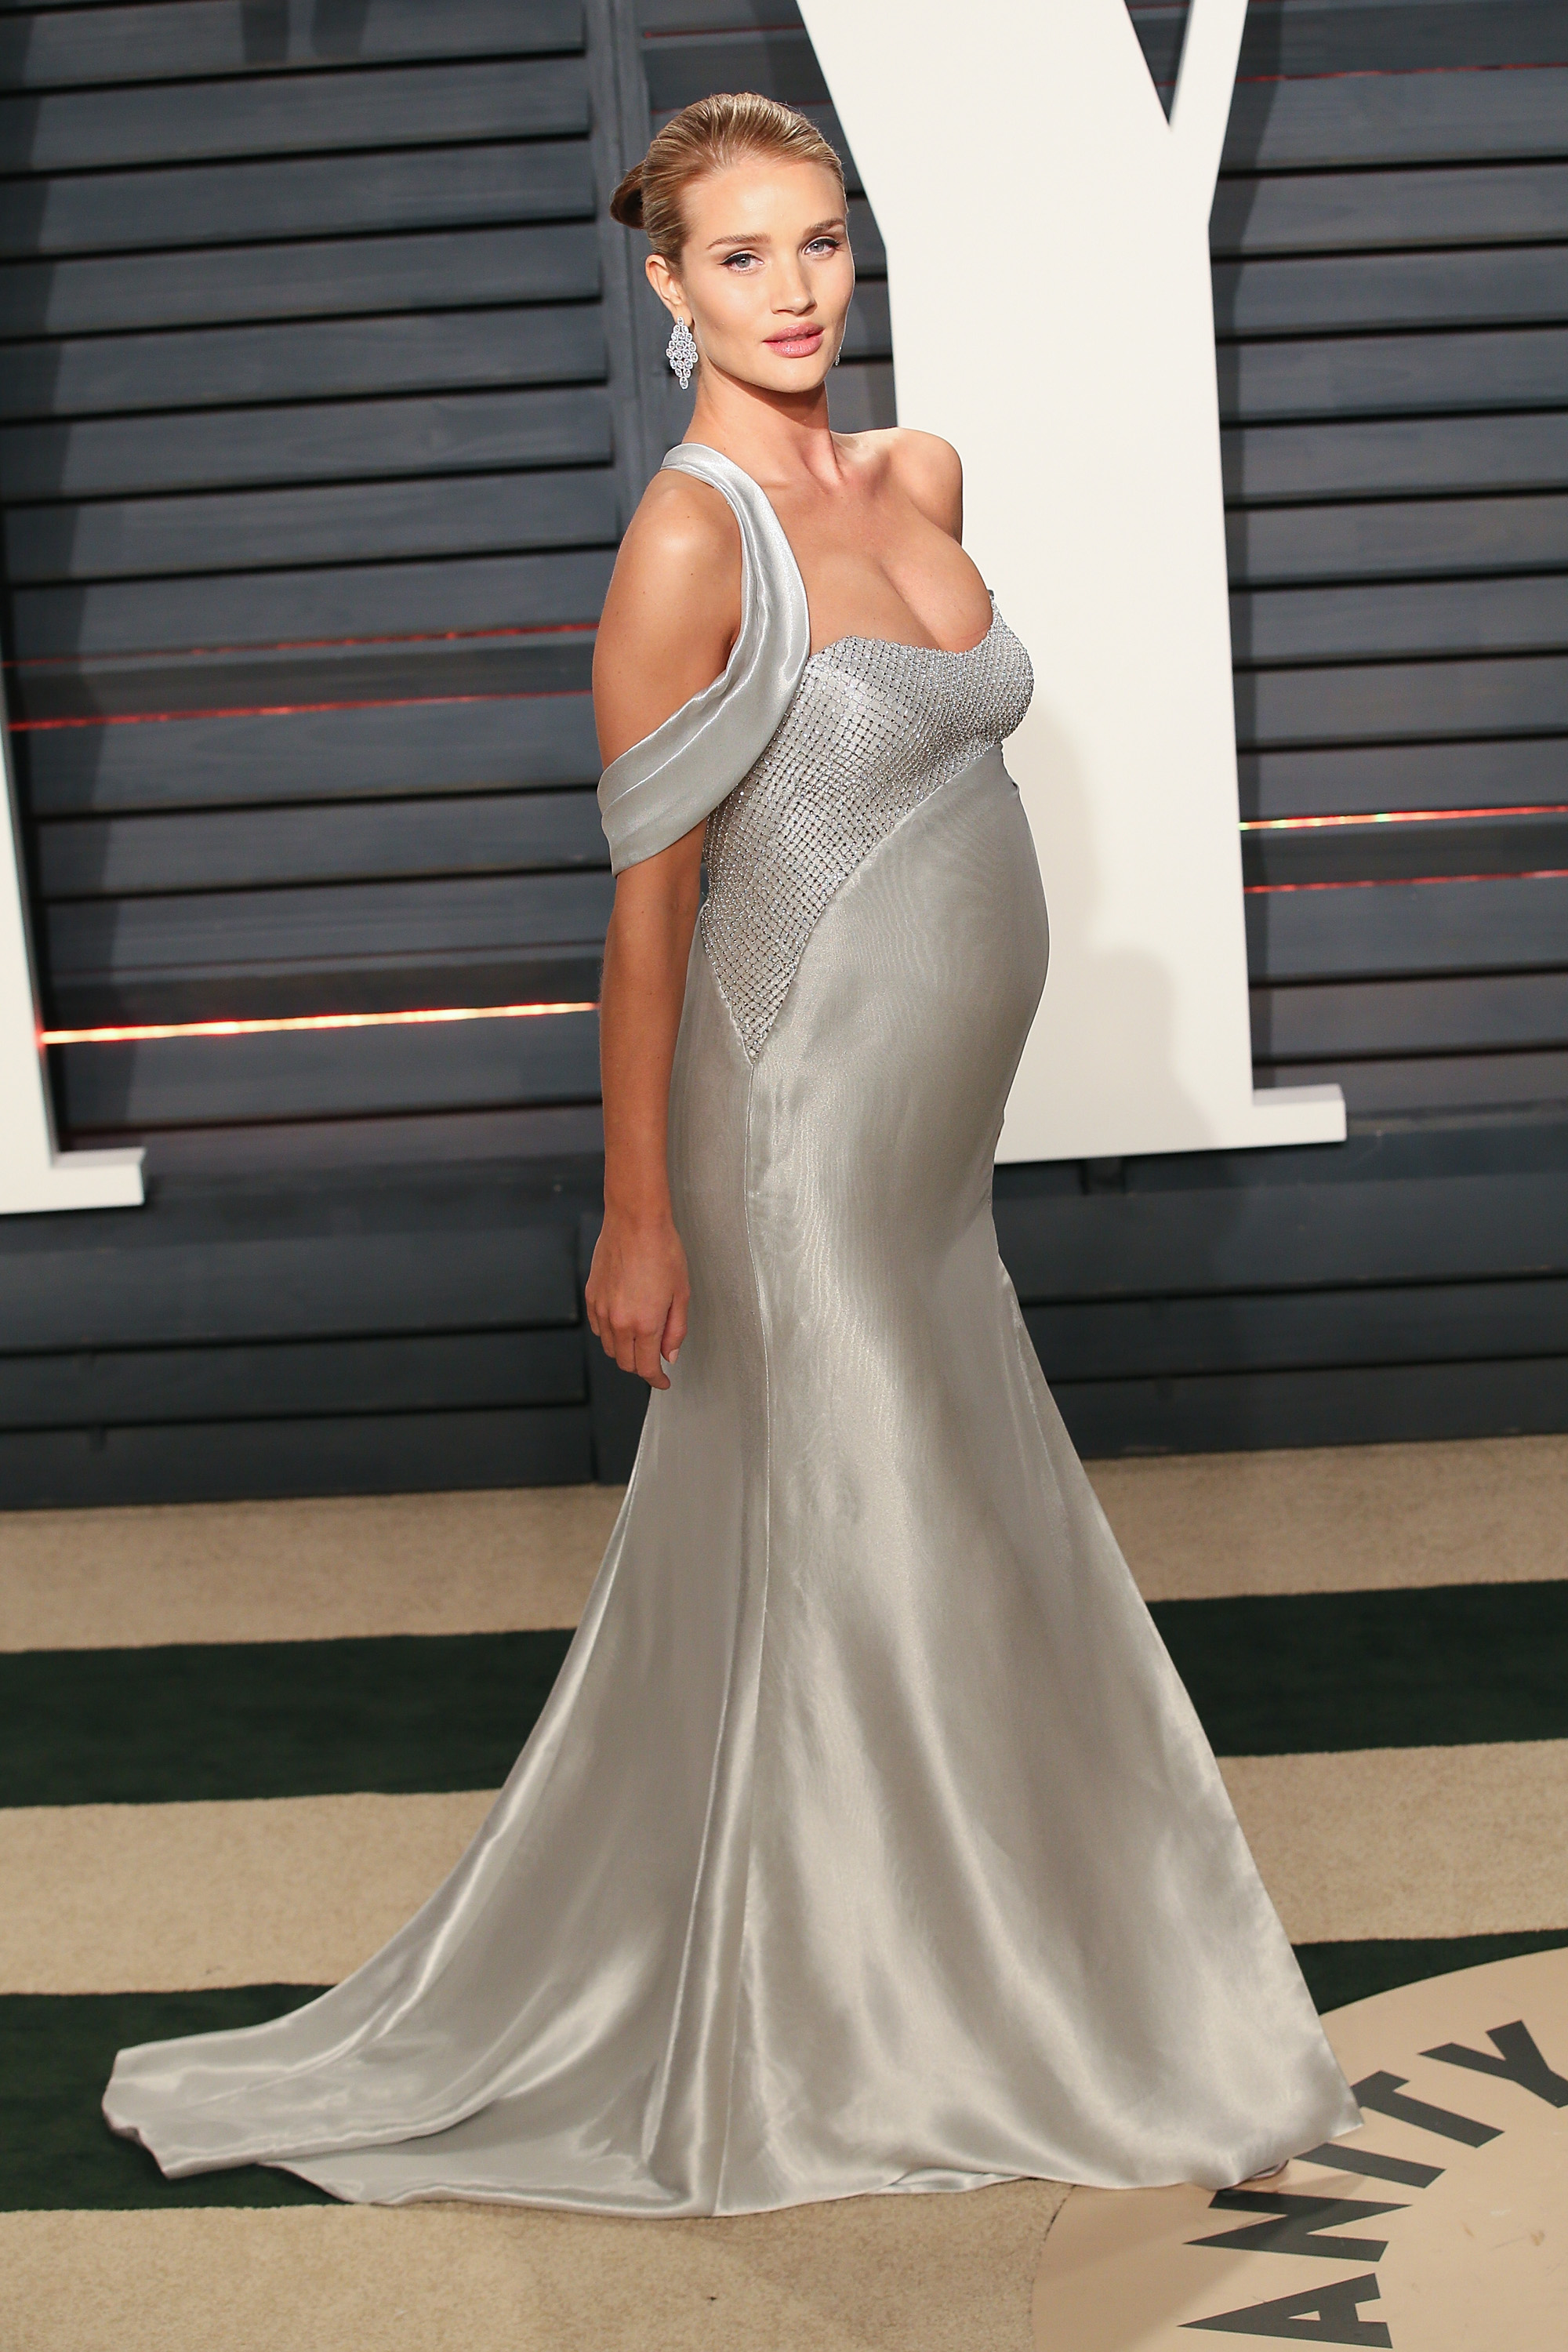 BEVERLY HILLS, CA - FEBRUARY 26: Model Rosie Huntington-Whiteley attends the 2017 Vanity Fair Oscar Party hosted by Graydon Carter at the Wallis Annenberg Center for the Performing Arts on February 26, 2017 in Beverly Hills, California. (Photo by David Livingston/Getty Images)